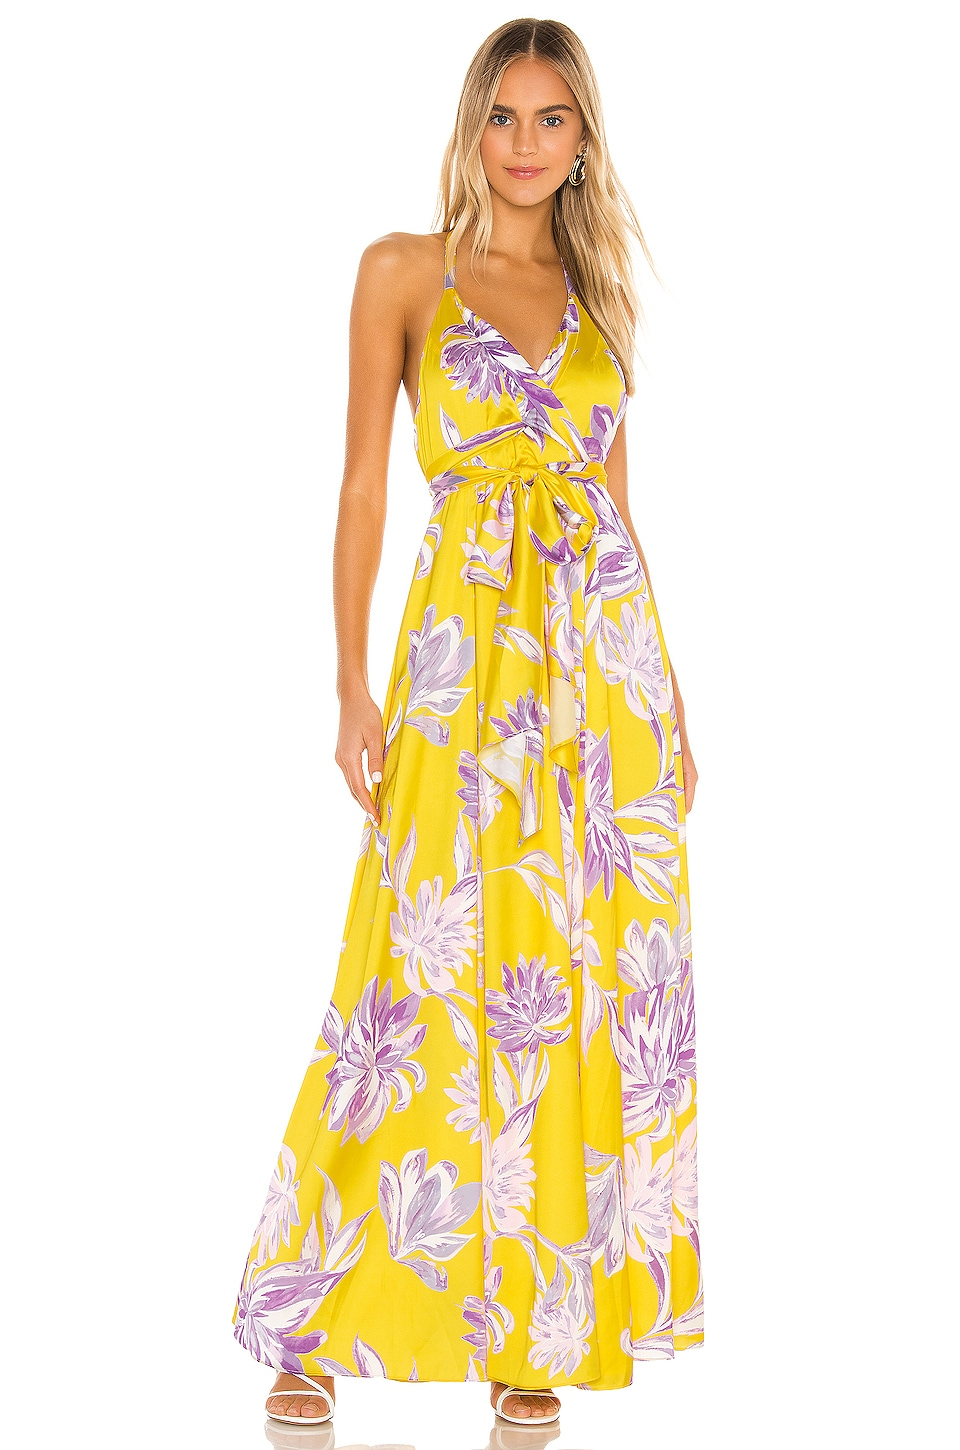 House of Harlow 1960 x REVOLVE Bloom Dress in Yellow Dahlia Floral